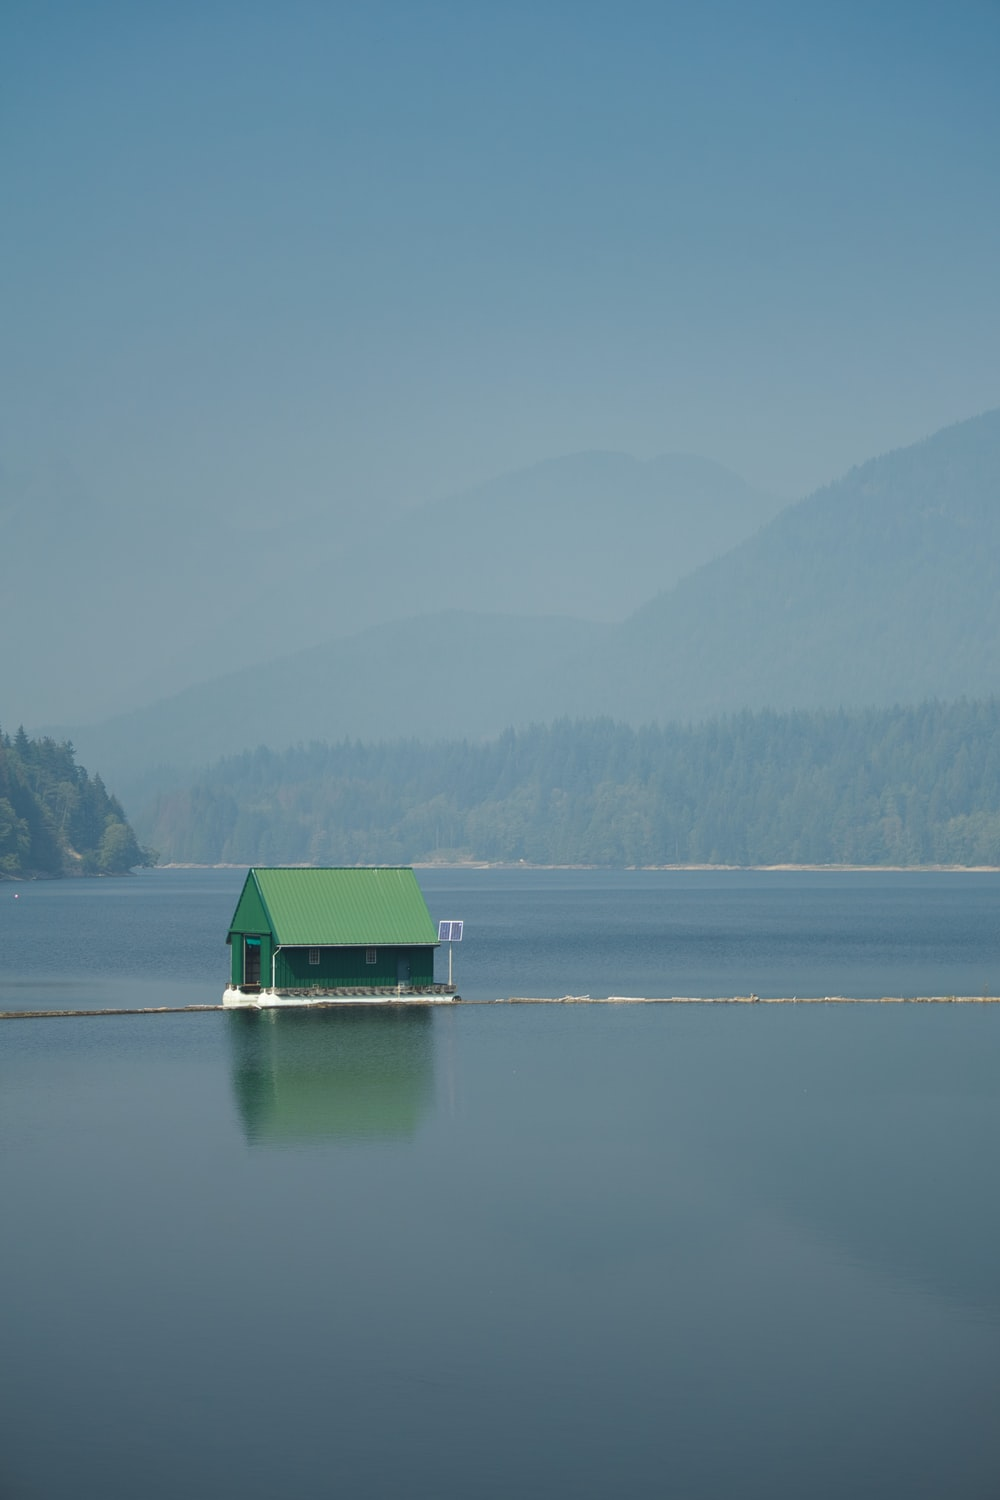 green and white house on lake during daytime